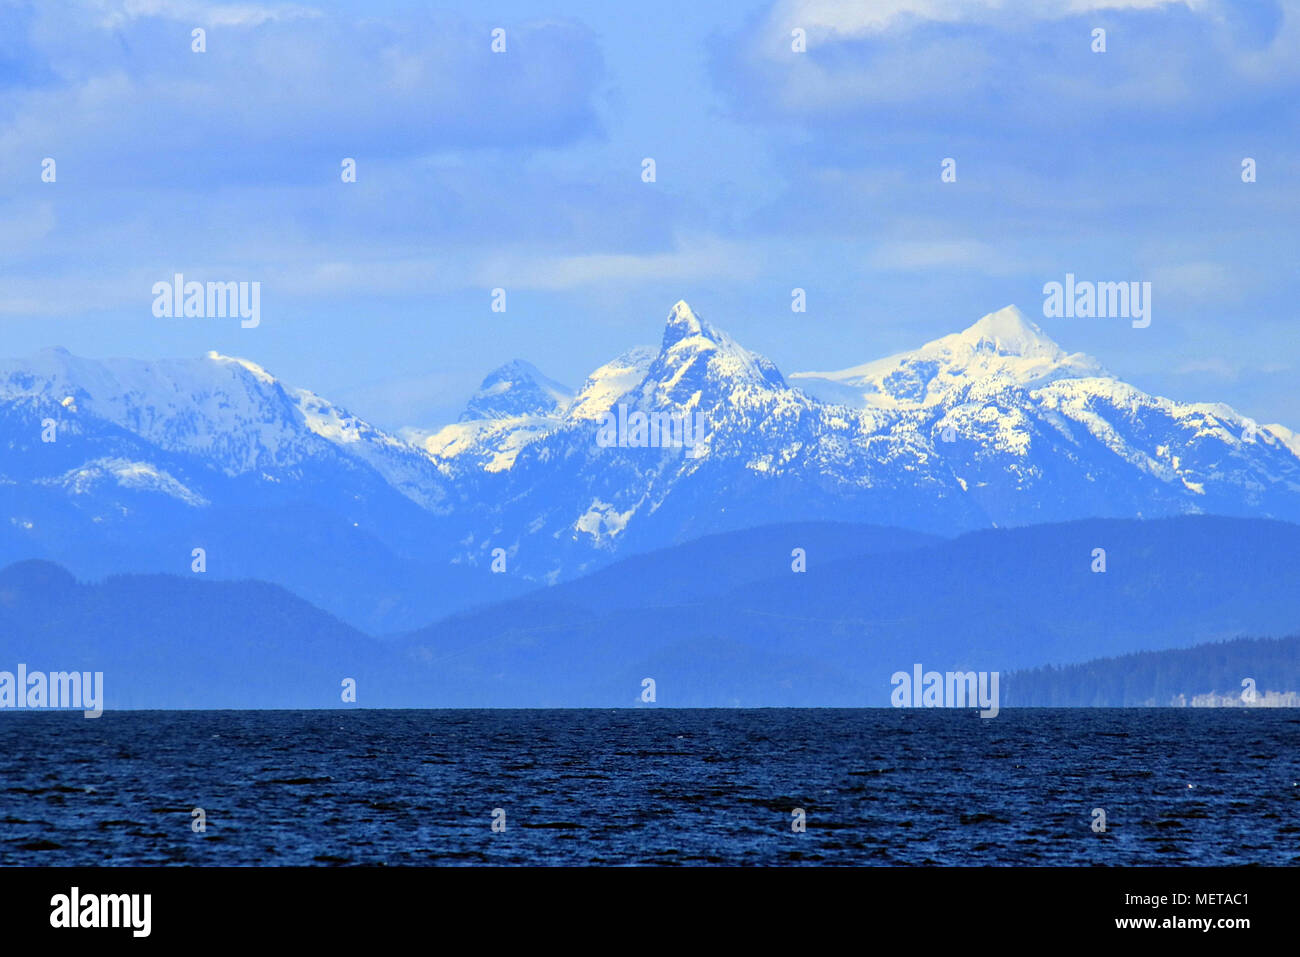 Mountains of Jervis Inlet across the Salish Sea from Nanaimo on Canada's Vancouver Island off the coast of British Columbia - Stock Image